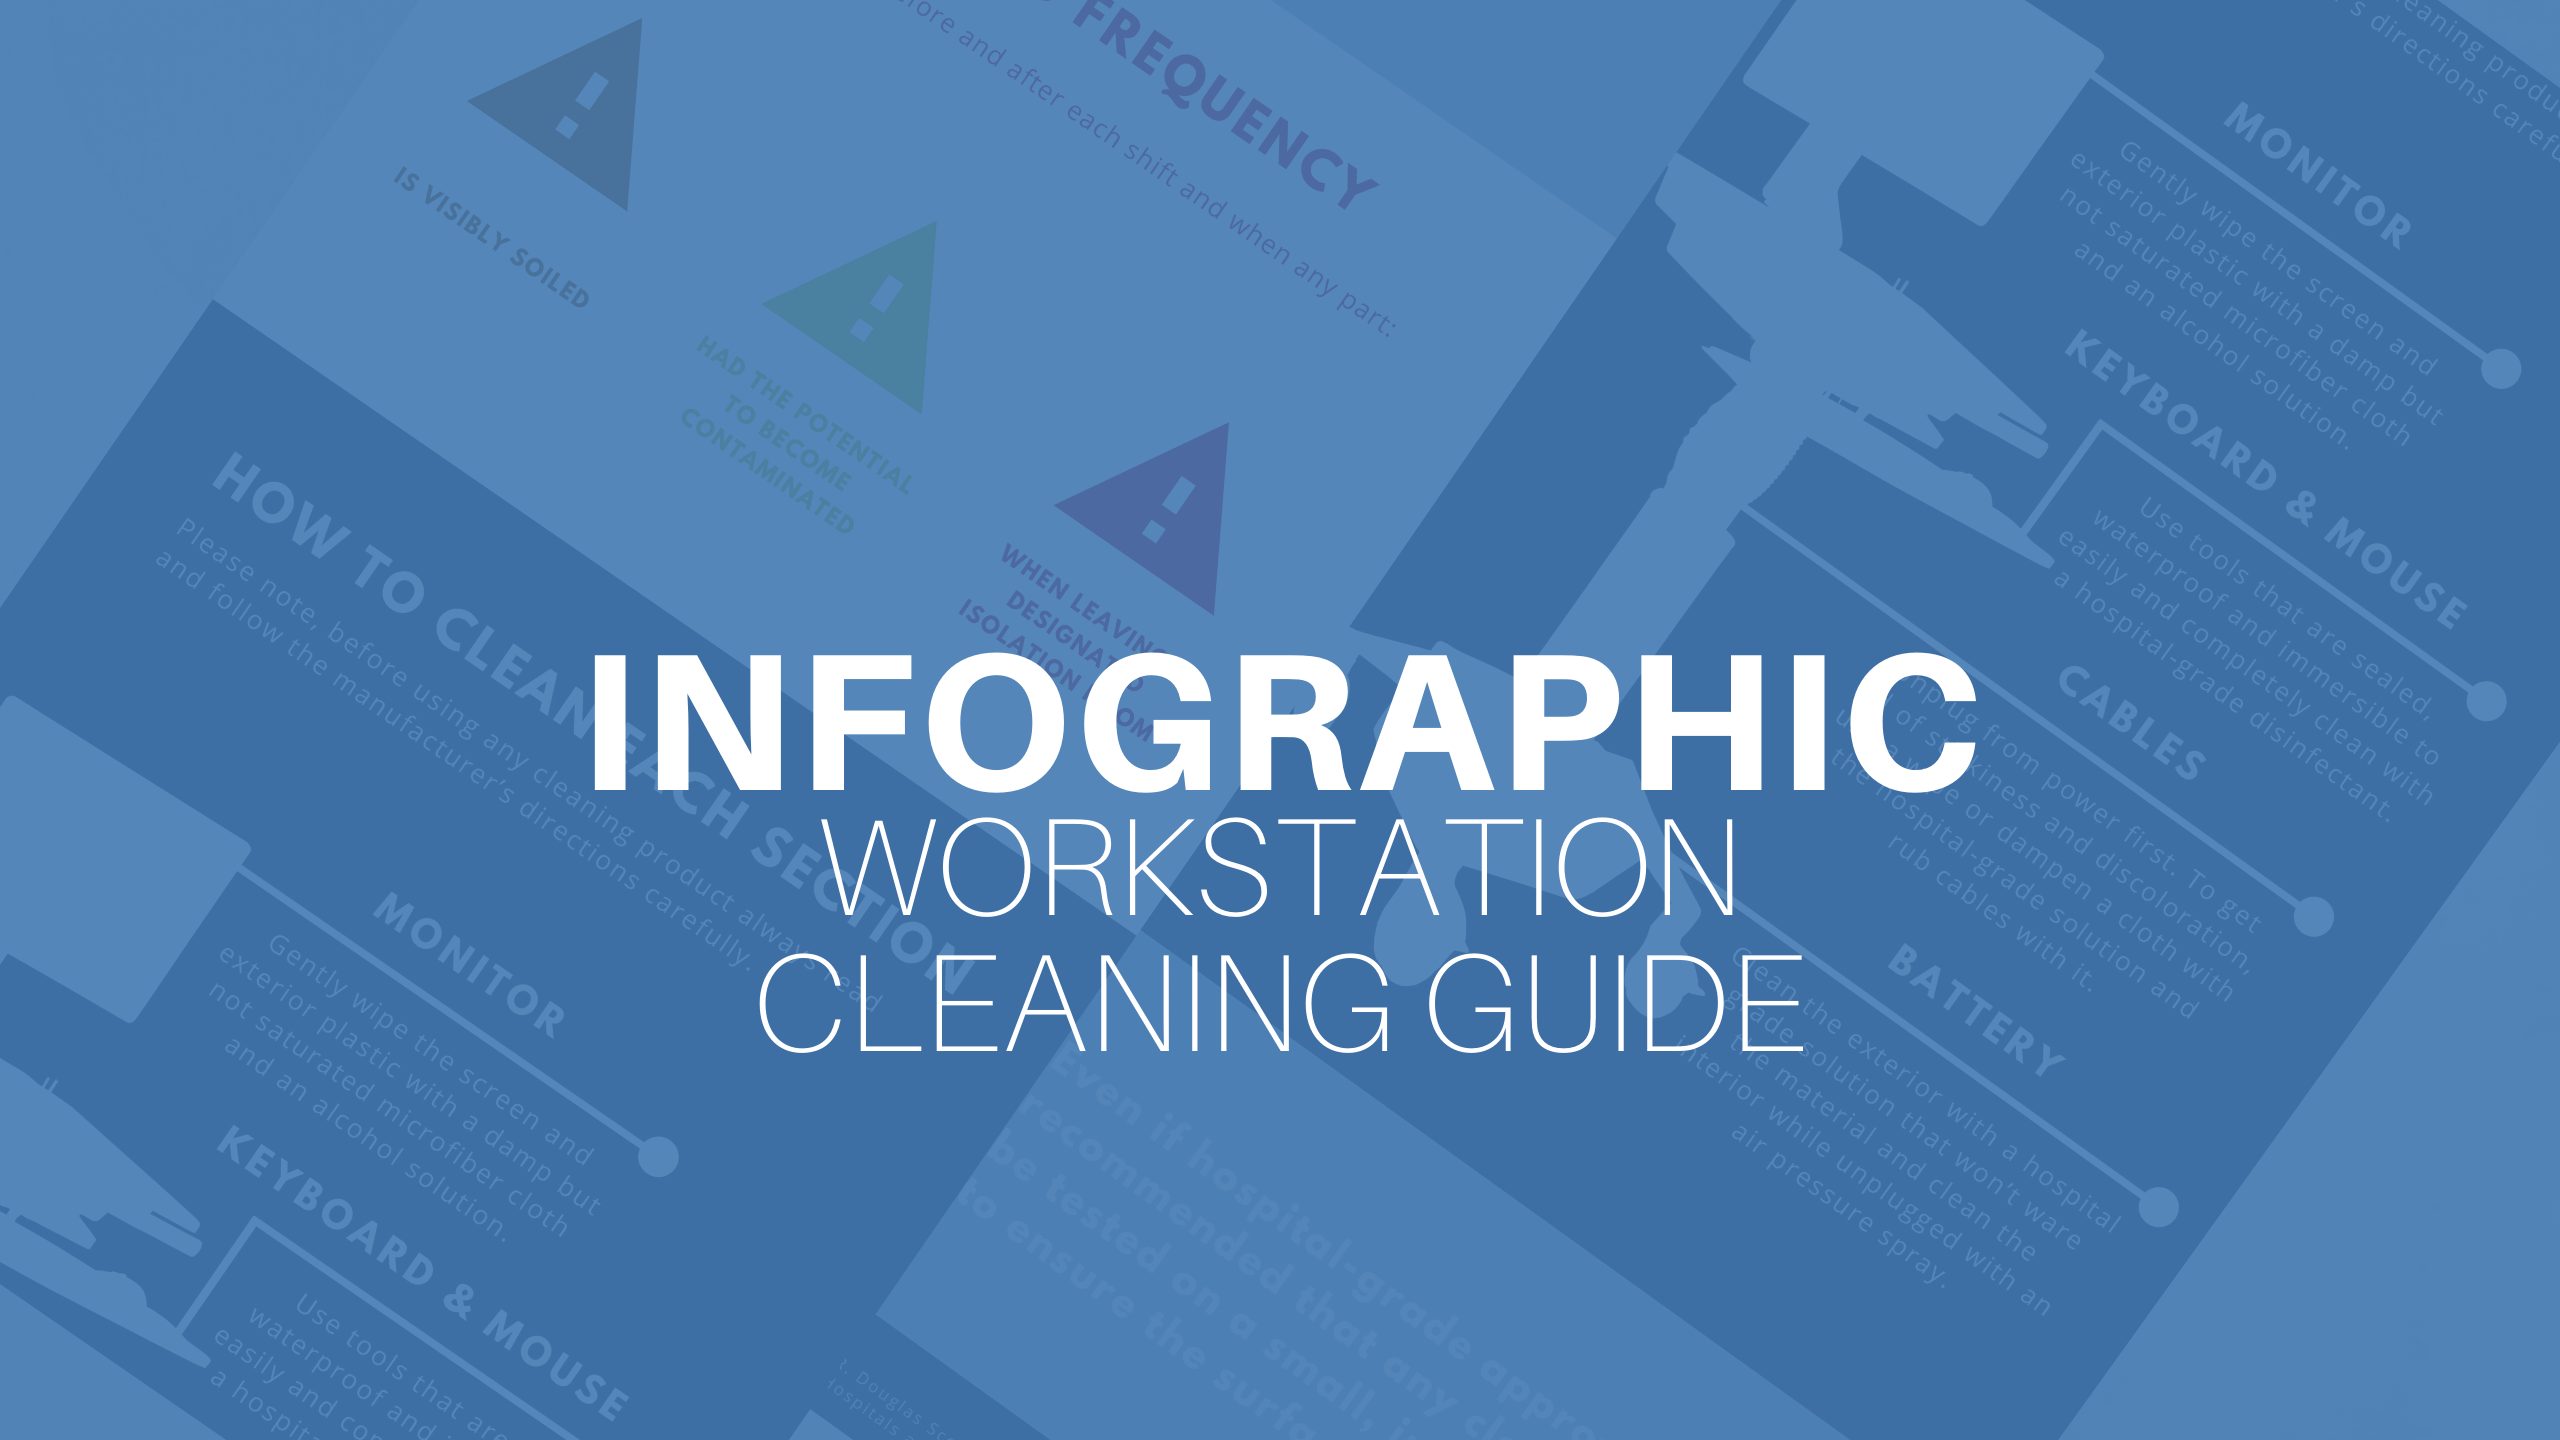 Infographic workstation cleaning guide